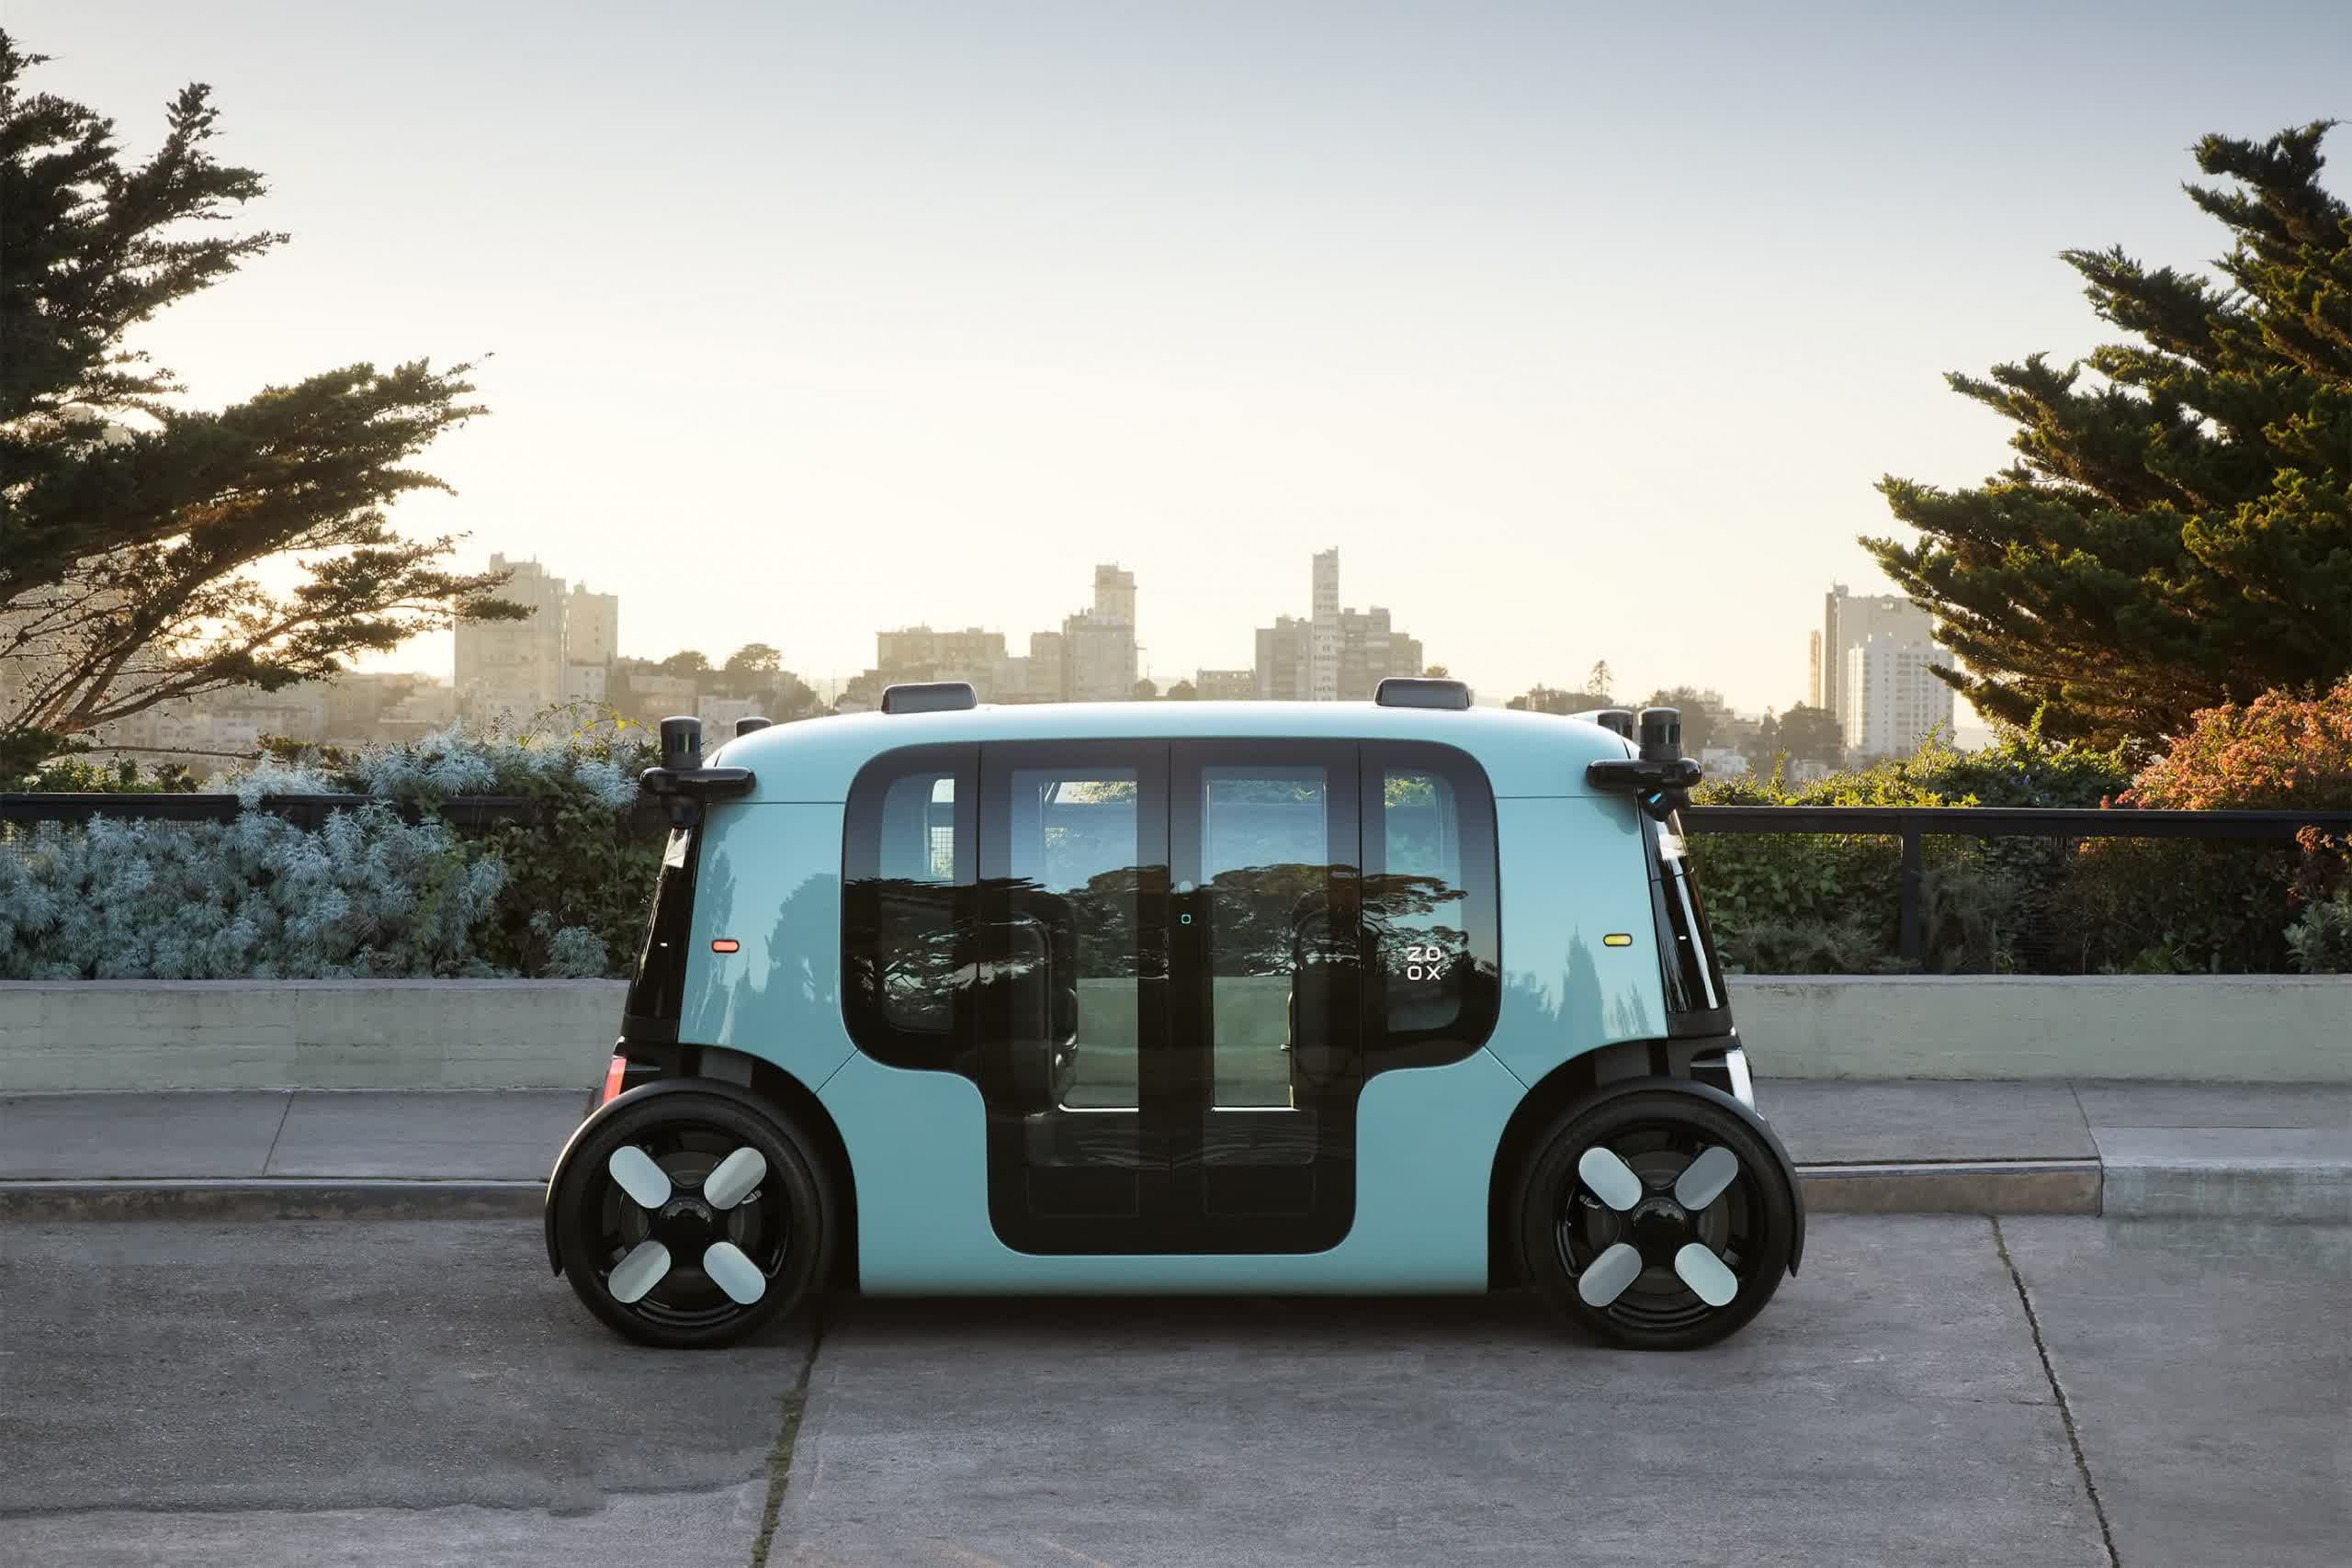 Zoox unveils its self-driving robotaxi paving the way for an Amazon ride-hailing service